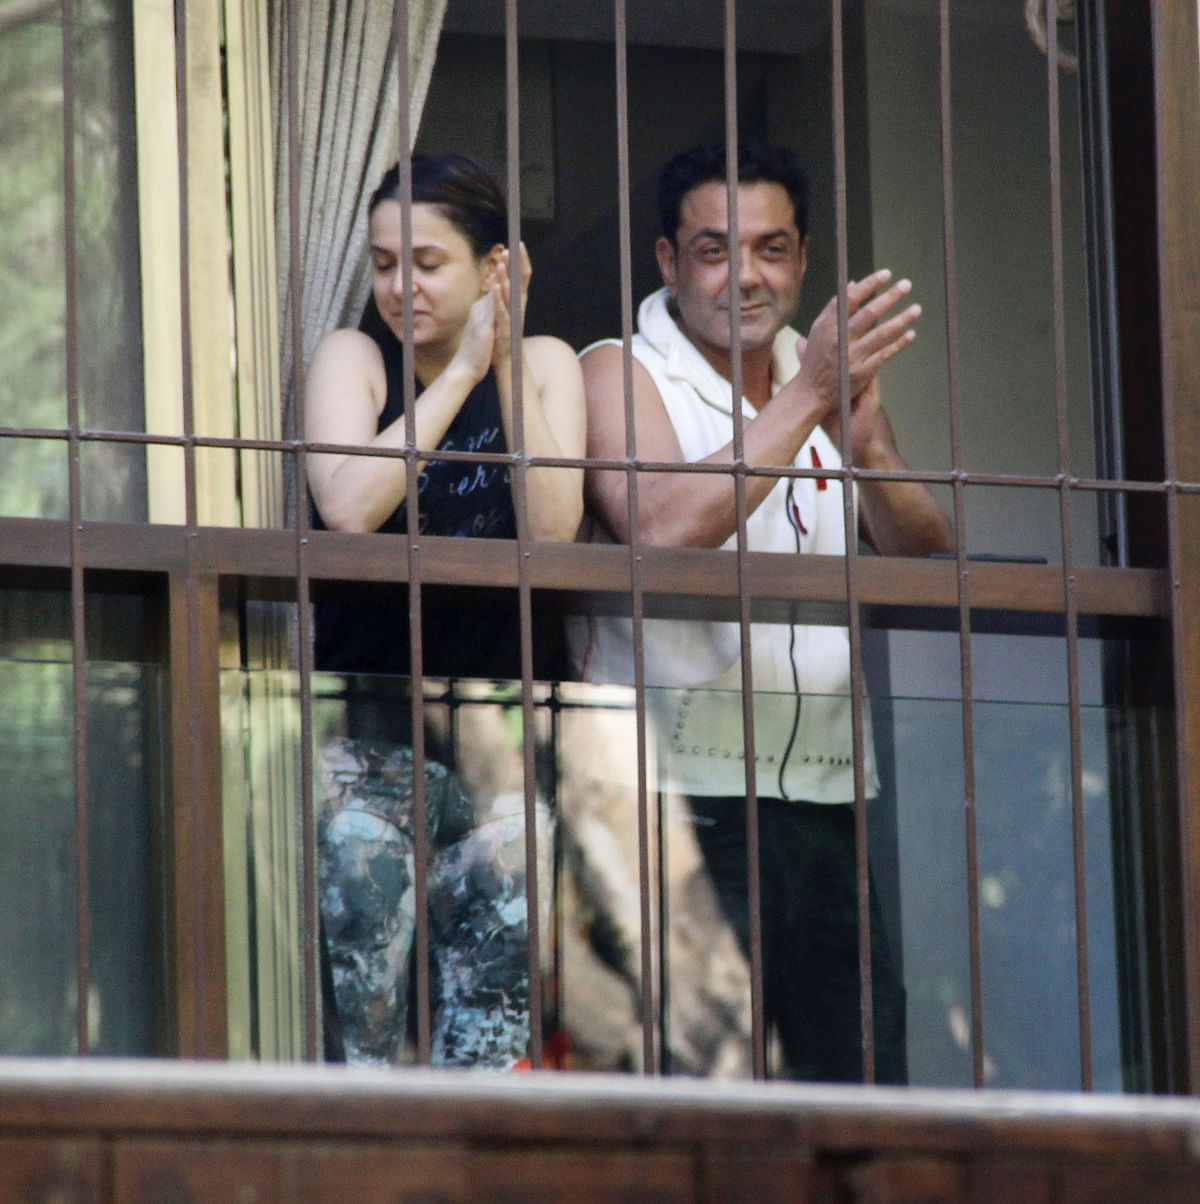 Bobby Deol claps with the crowd.